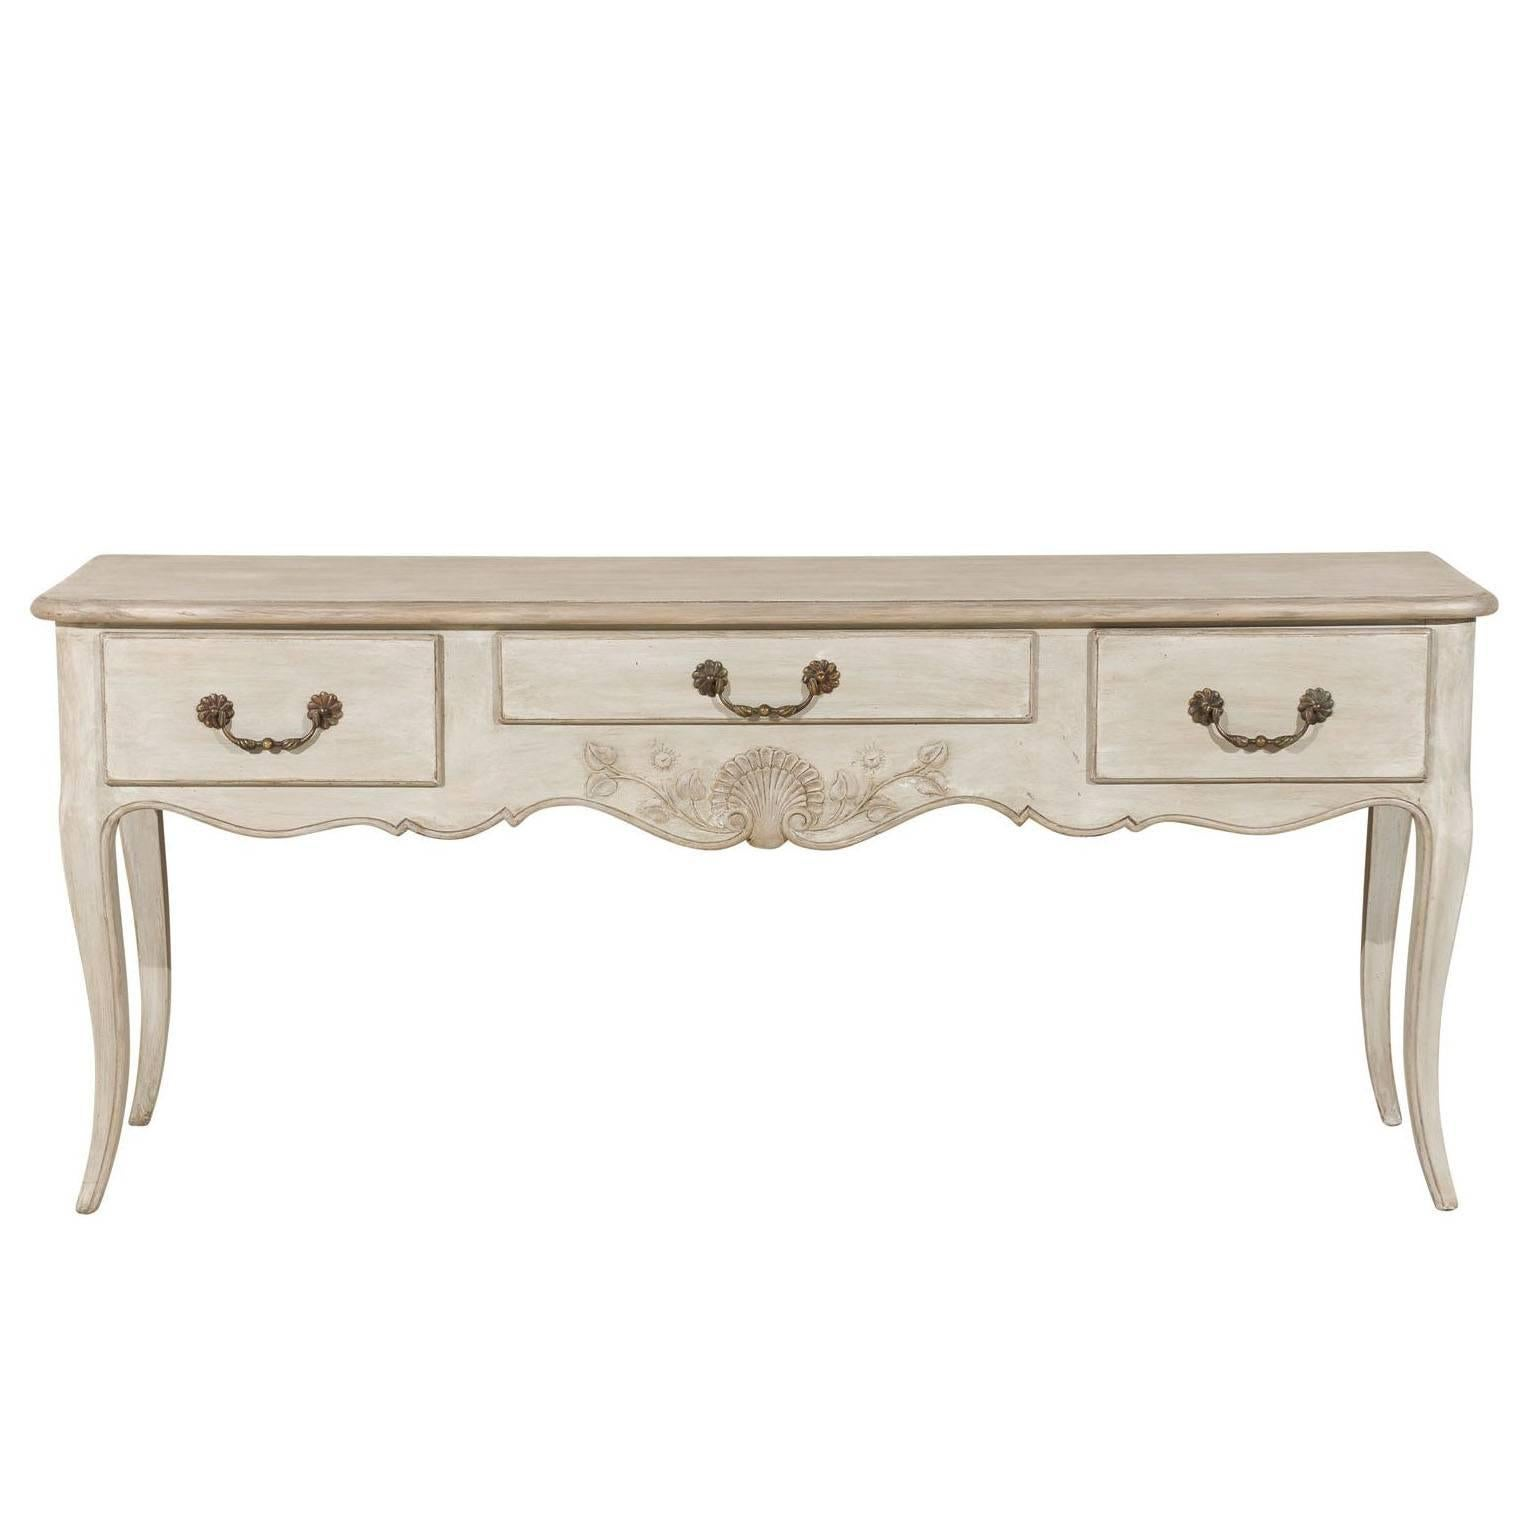 French Painted Three-Drawer Wooden Console Table